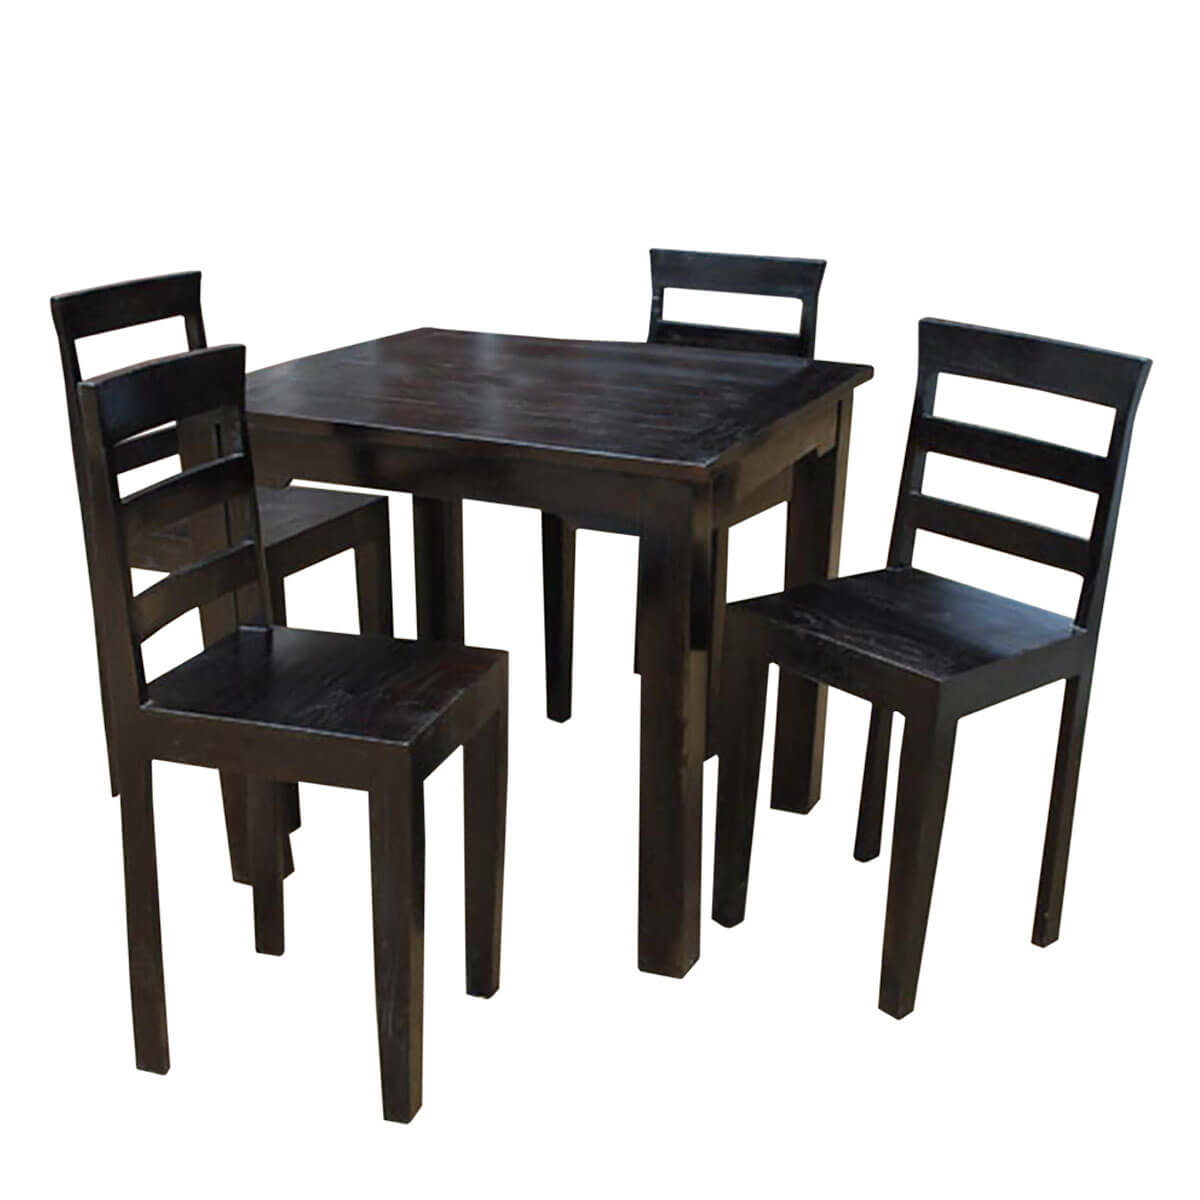 casual square dining table w ebony finish made of solid wood. Black Bedroom Furniture Sets. Home Design Ideas